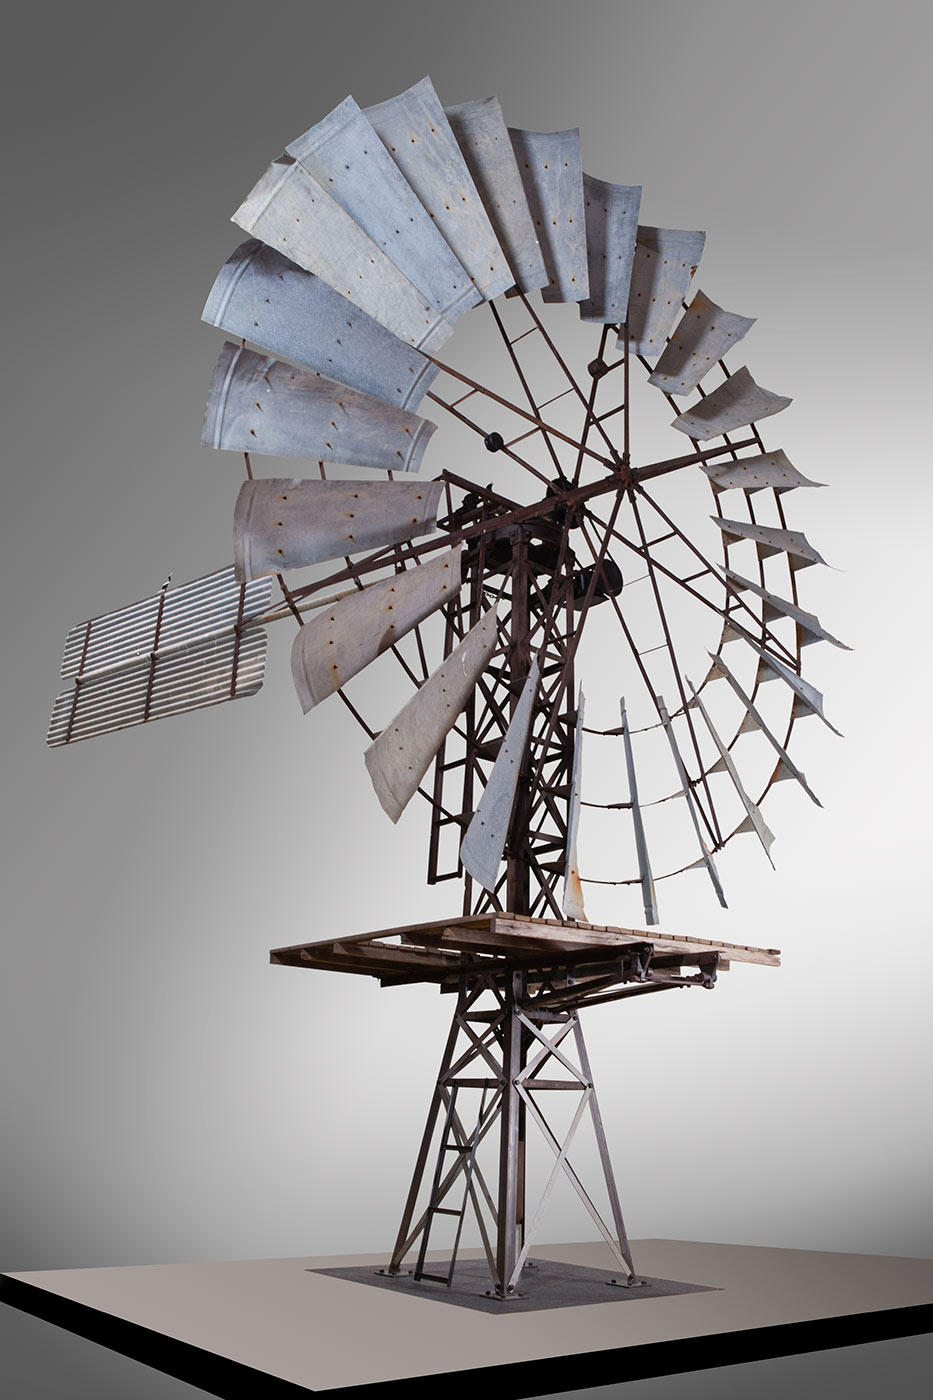 A photo of the top section of a windmill on display indoors - click to view larger image